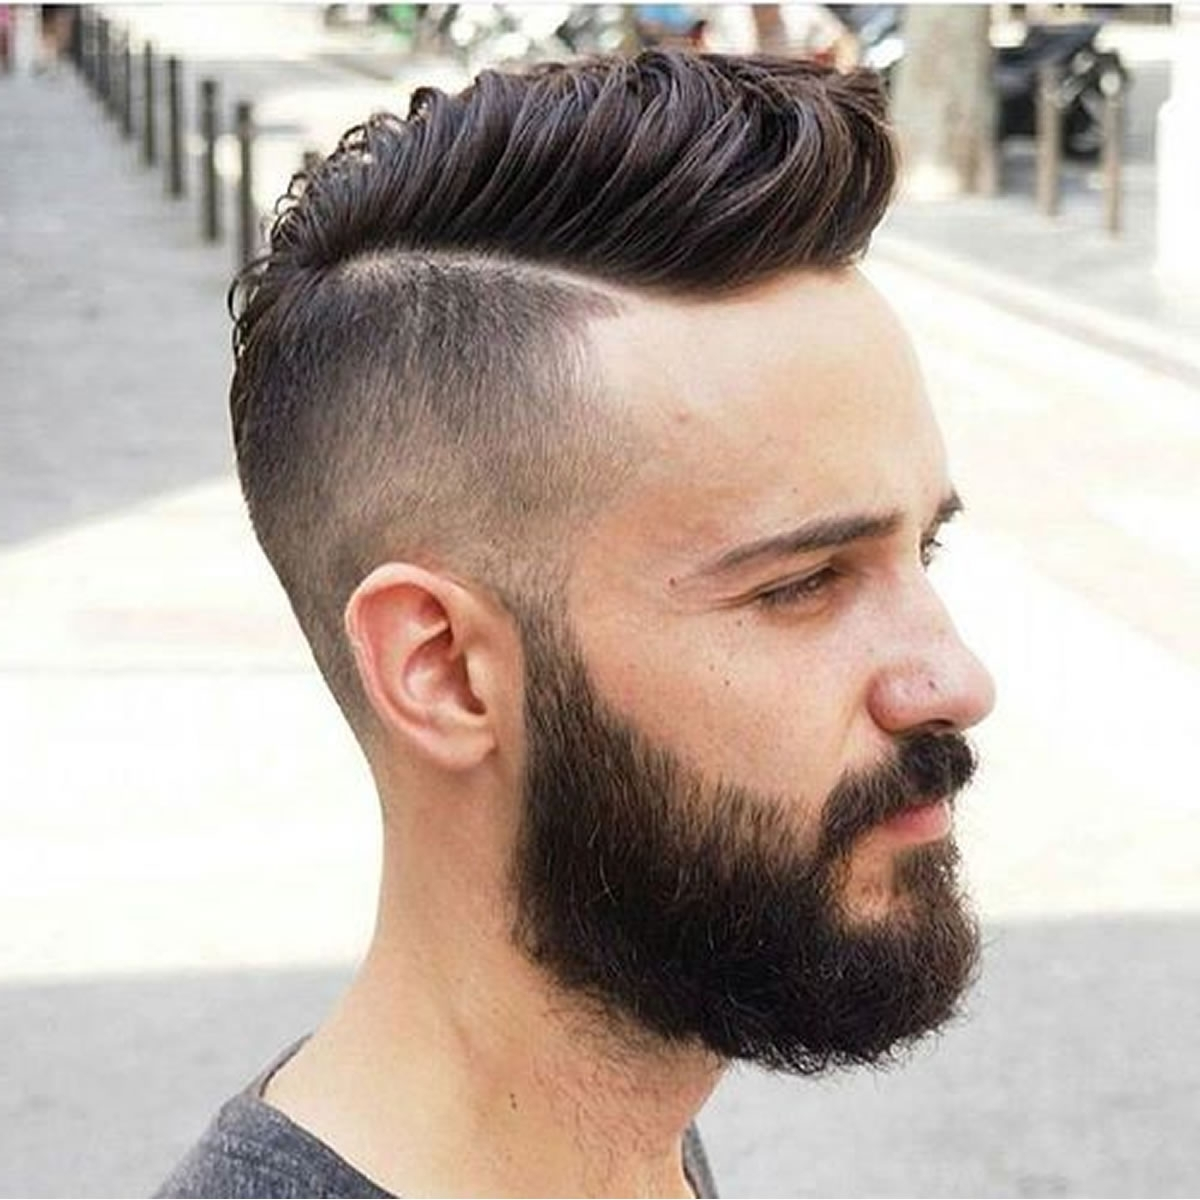 2018 Short Haircuts For Men – 17 Great Short Hair Ideas, Photos Within Best And Newest Hipster Pixie Hairstyles (View 9 of 15)